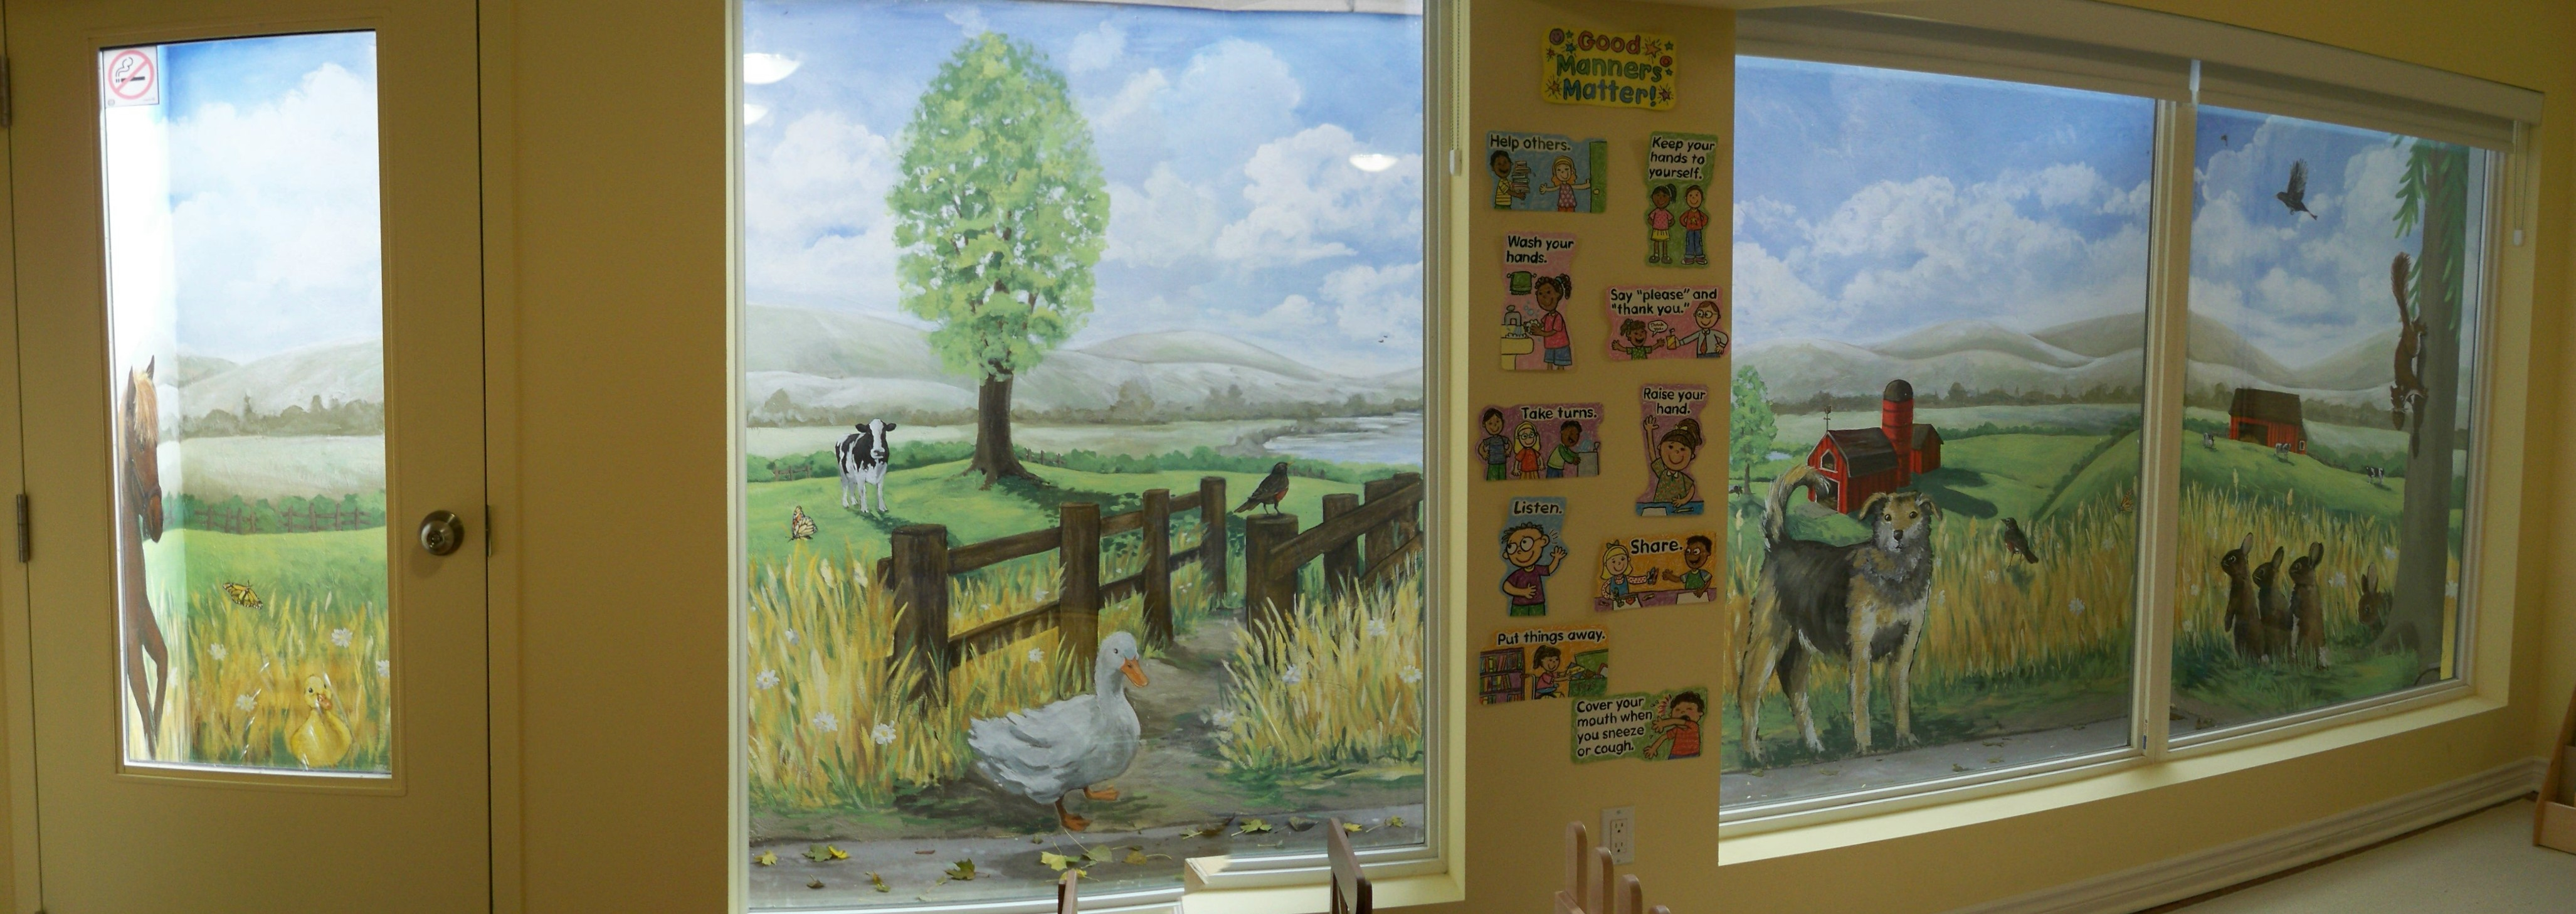 Murals By Marg TBA Farm Mural 1.JPG